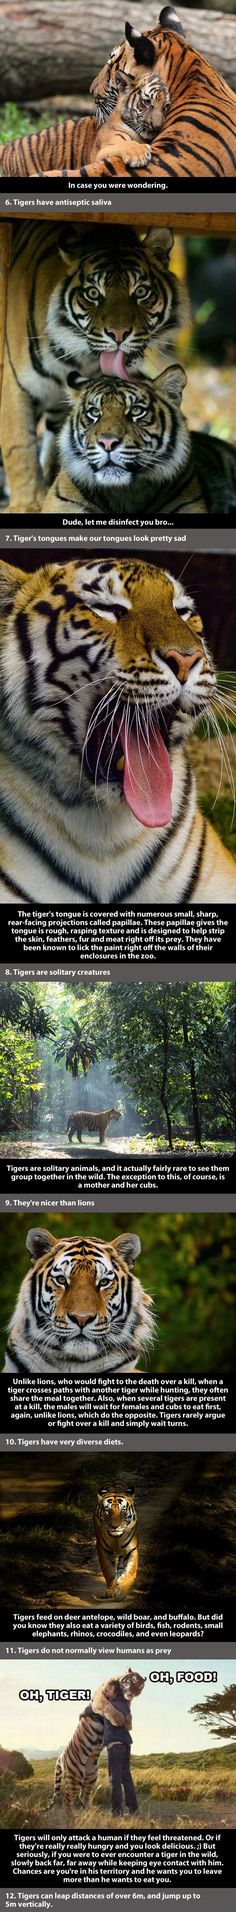 Badass facts about a tiger // funny pictures - funny photos - funny images - funny pics - funny quotes - #lol #humor #funnypictures